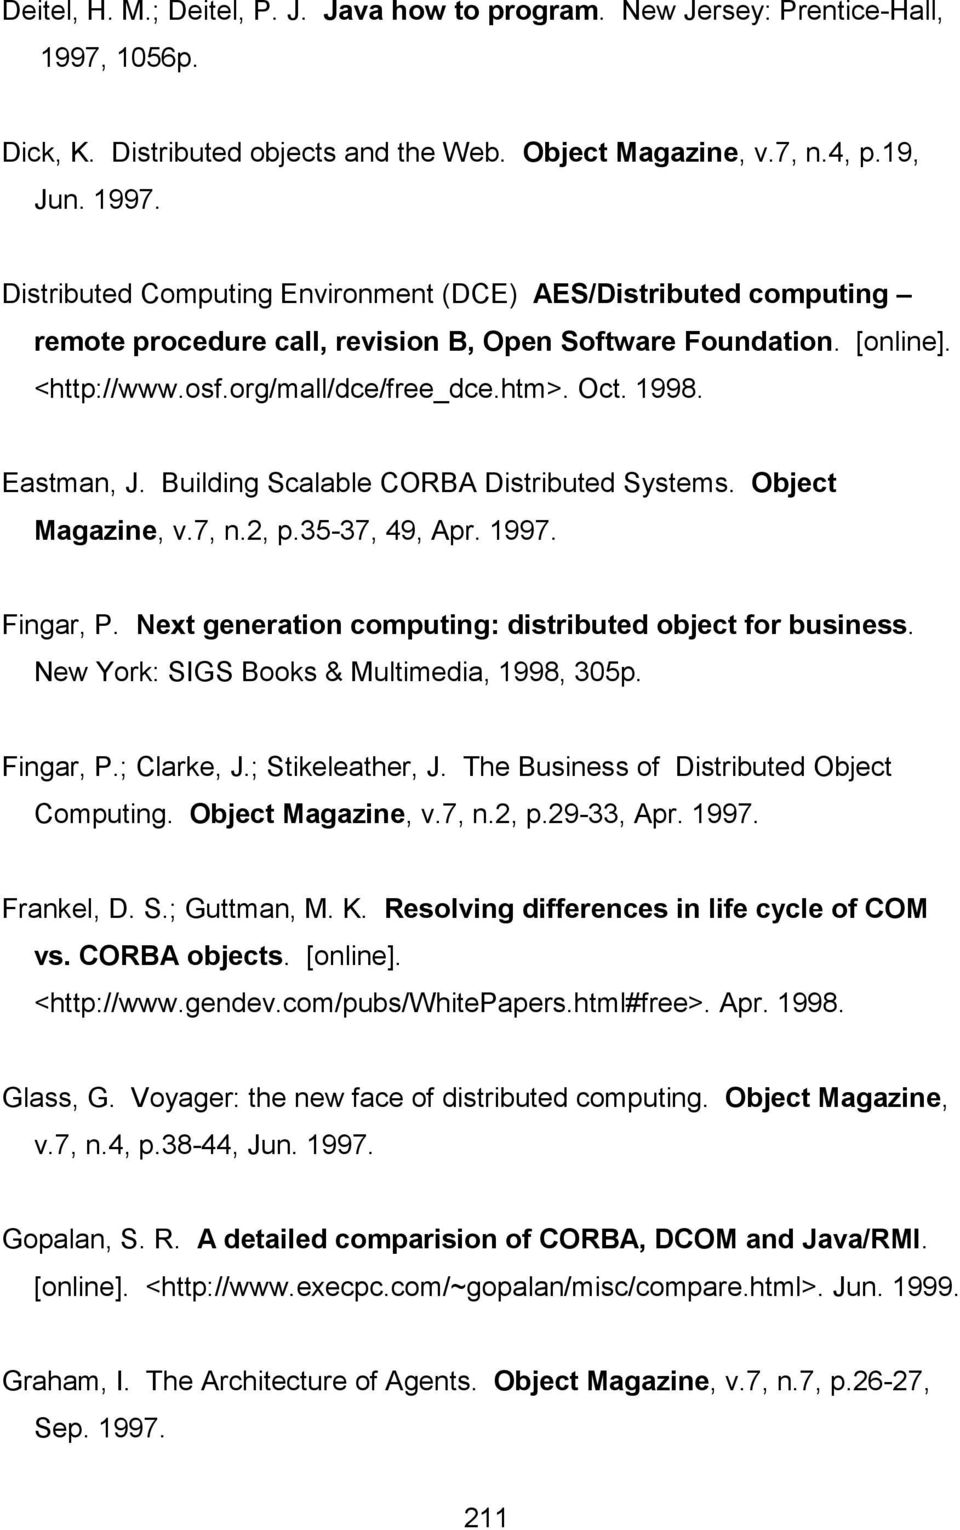 Distributed Computing Environment (DCE) AES/Distributed computing remote procedure call, revision B, Open Software Foundation. [online]. <http://www.osf.org/mall/dce/free_dce.htm>. Oct. 1998.